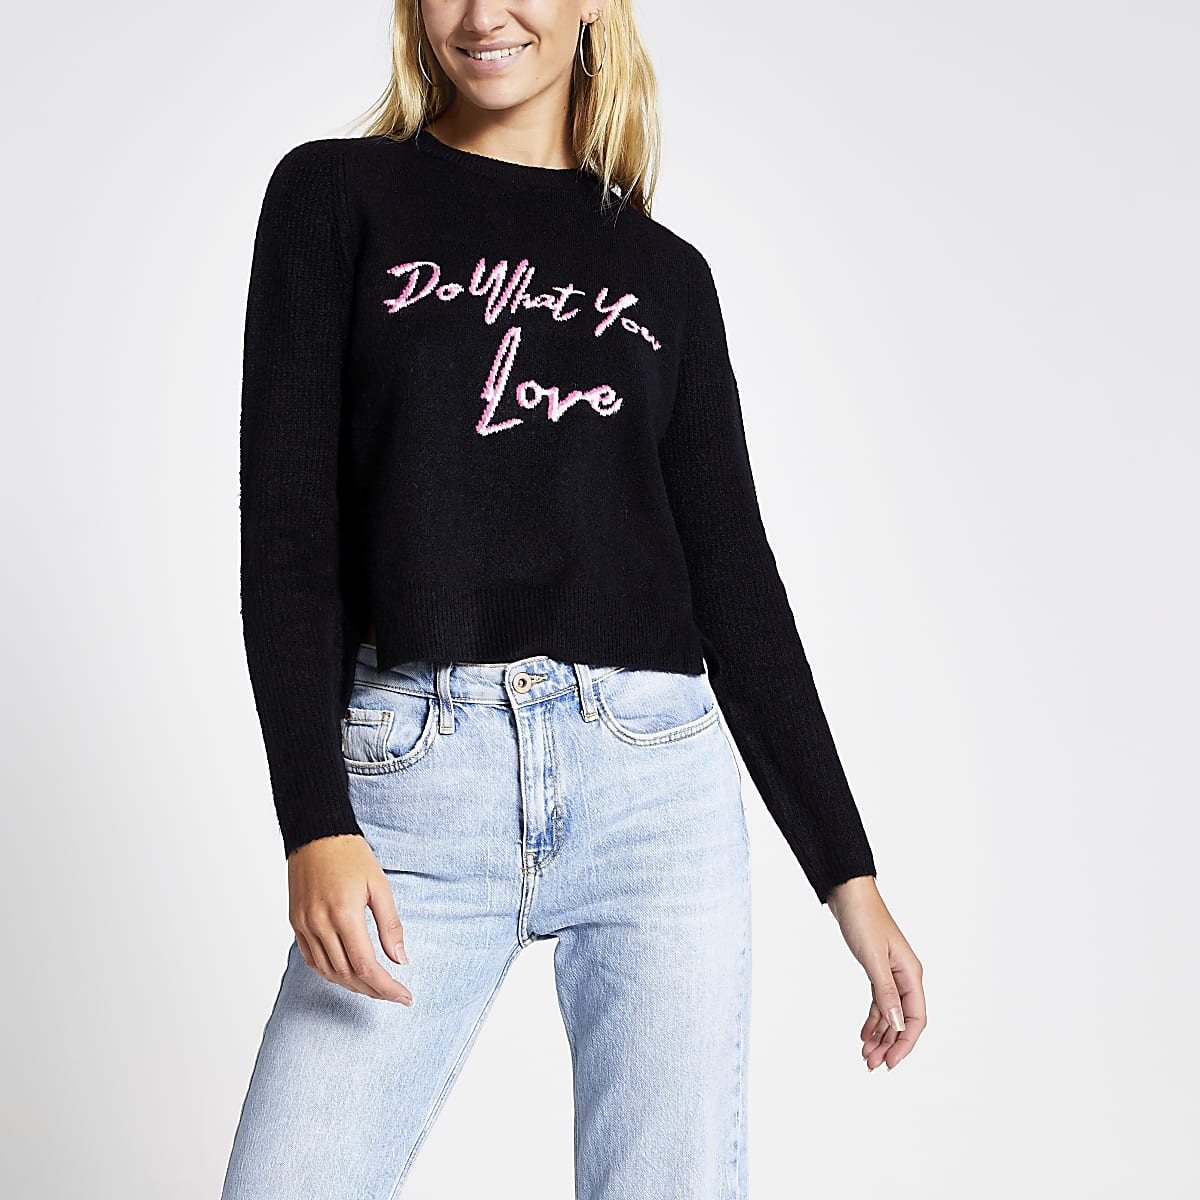 Navy 'Do what you love' cropped jumper